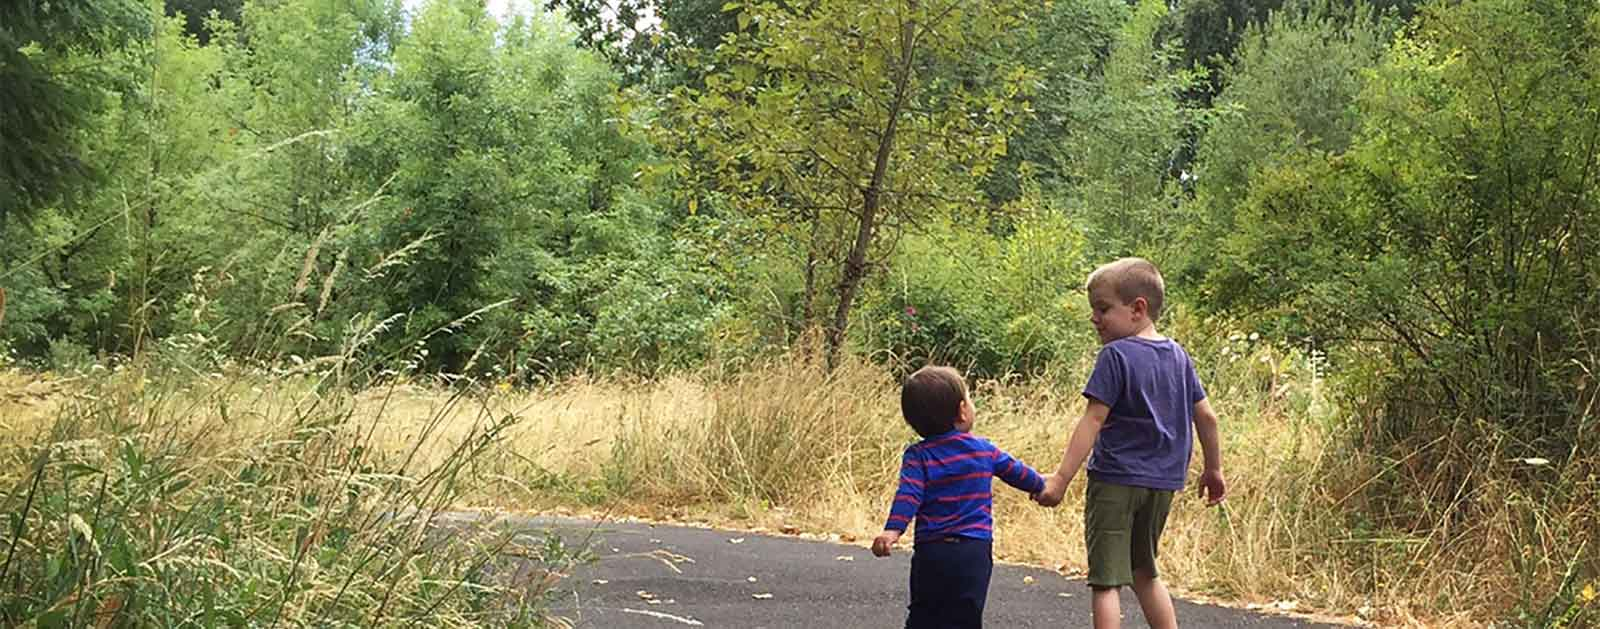 My sons exploring outside together | Amy Kober